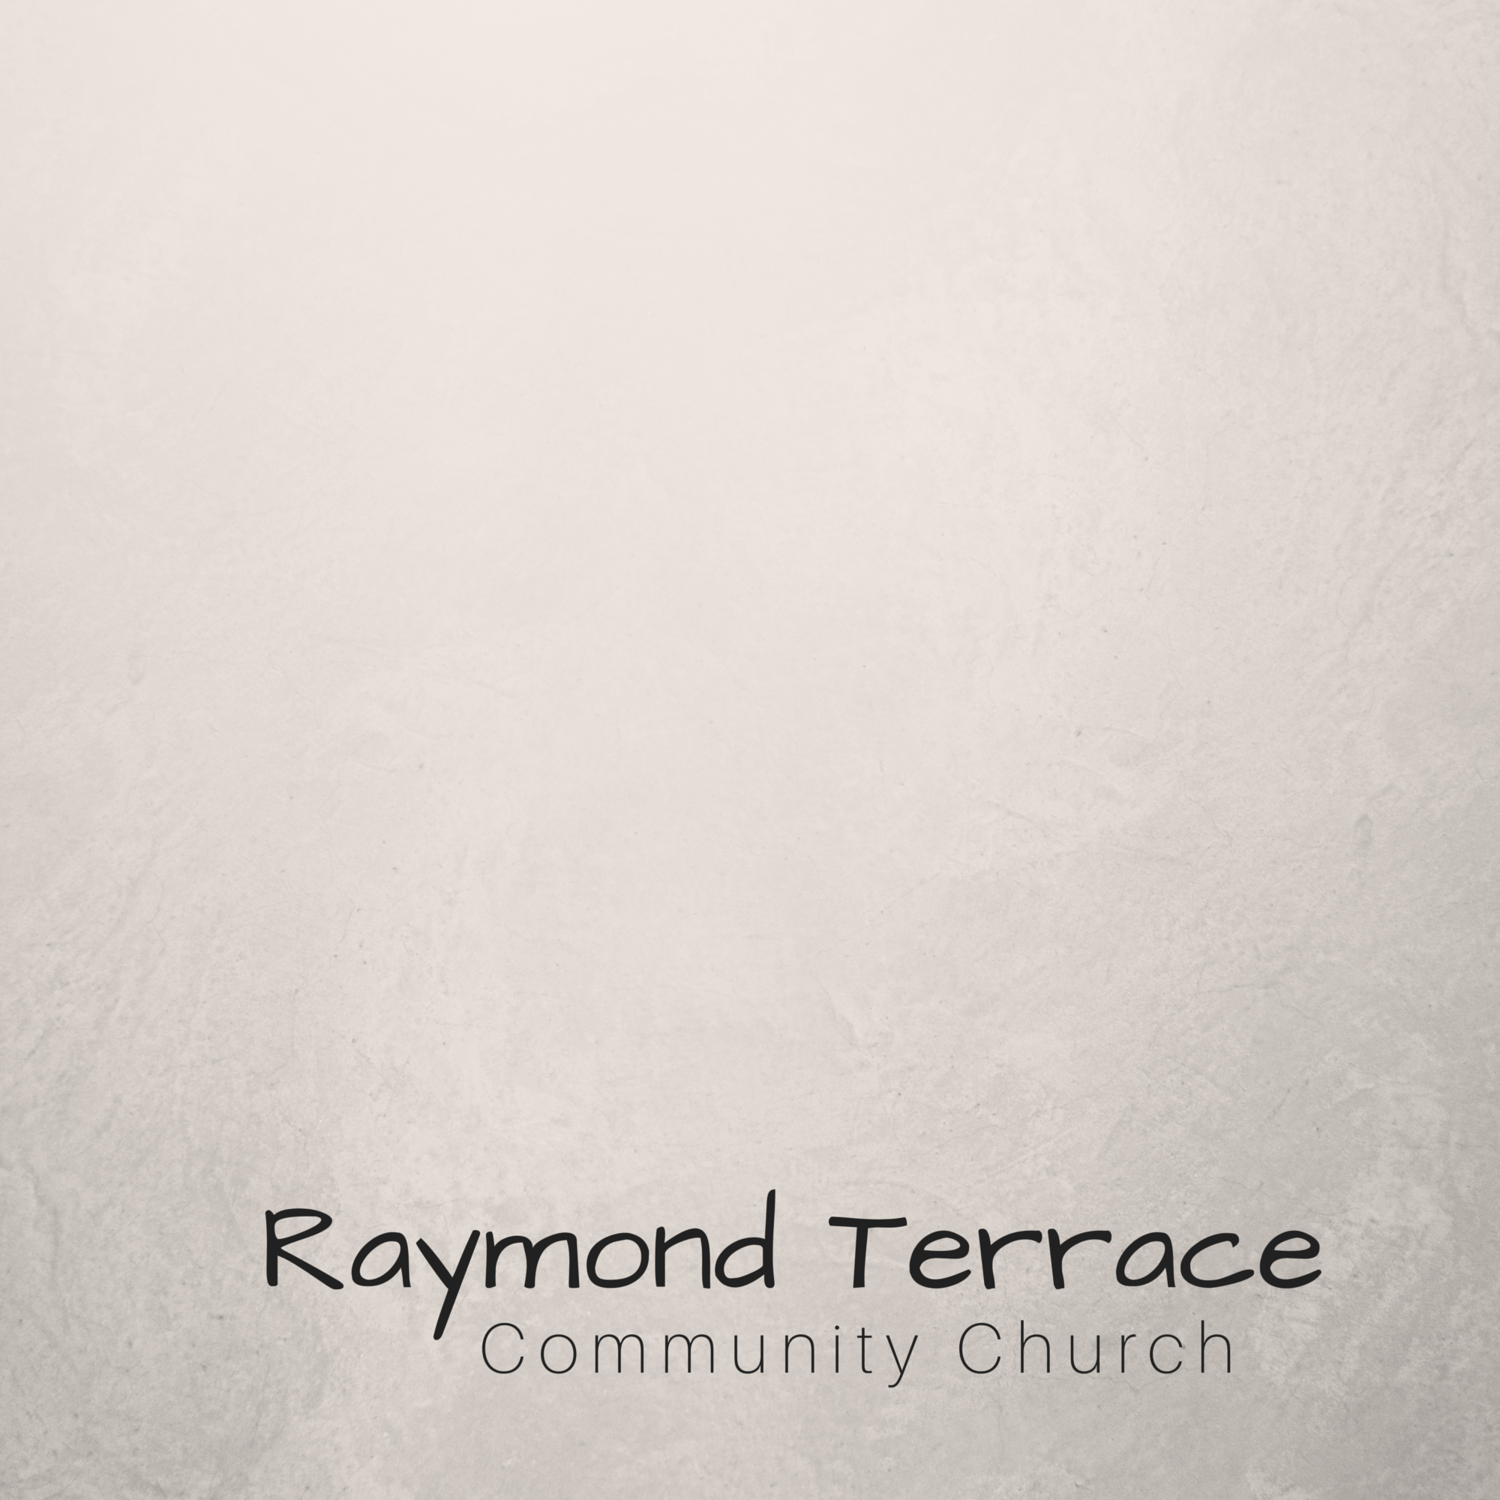 Sermon Podcast - Raymond Terrace Community Church